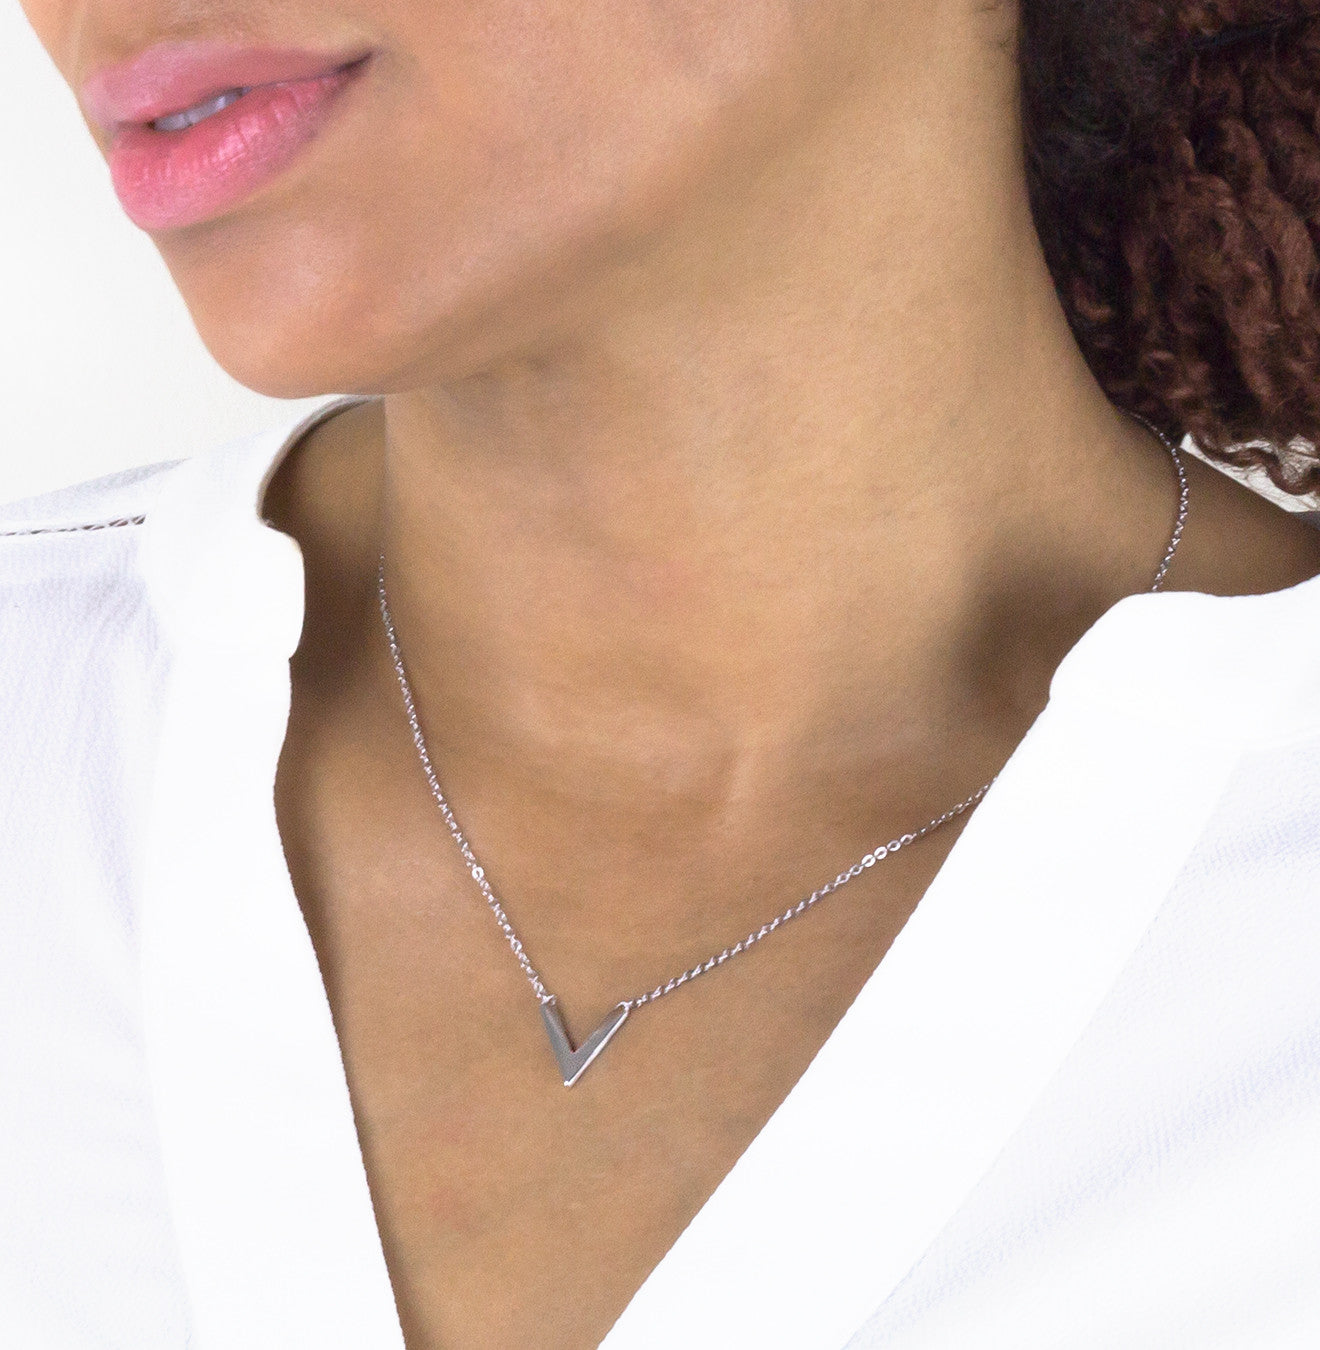 Mini V-Shaped Pendant Necklace - Silver 925